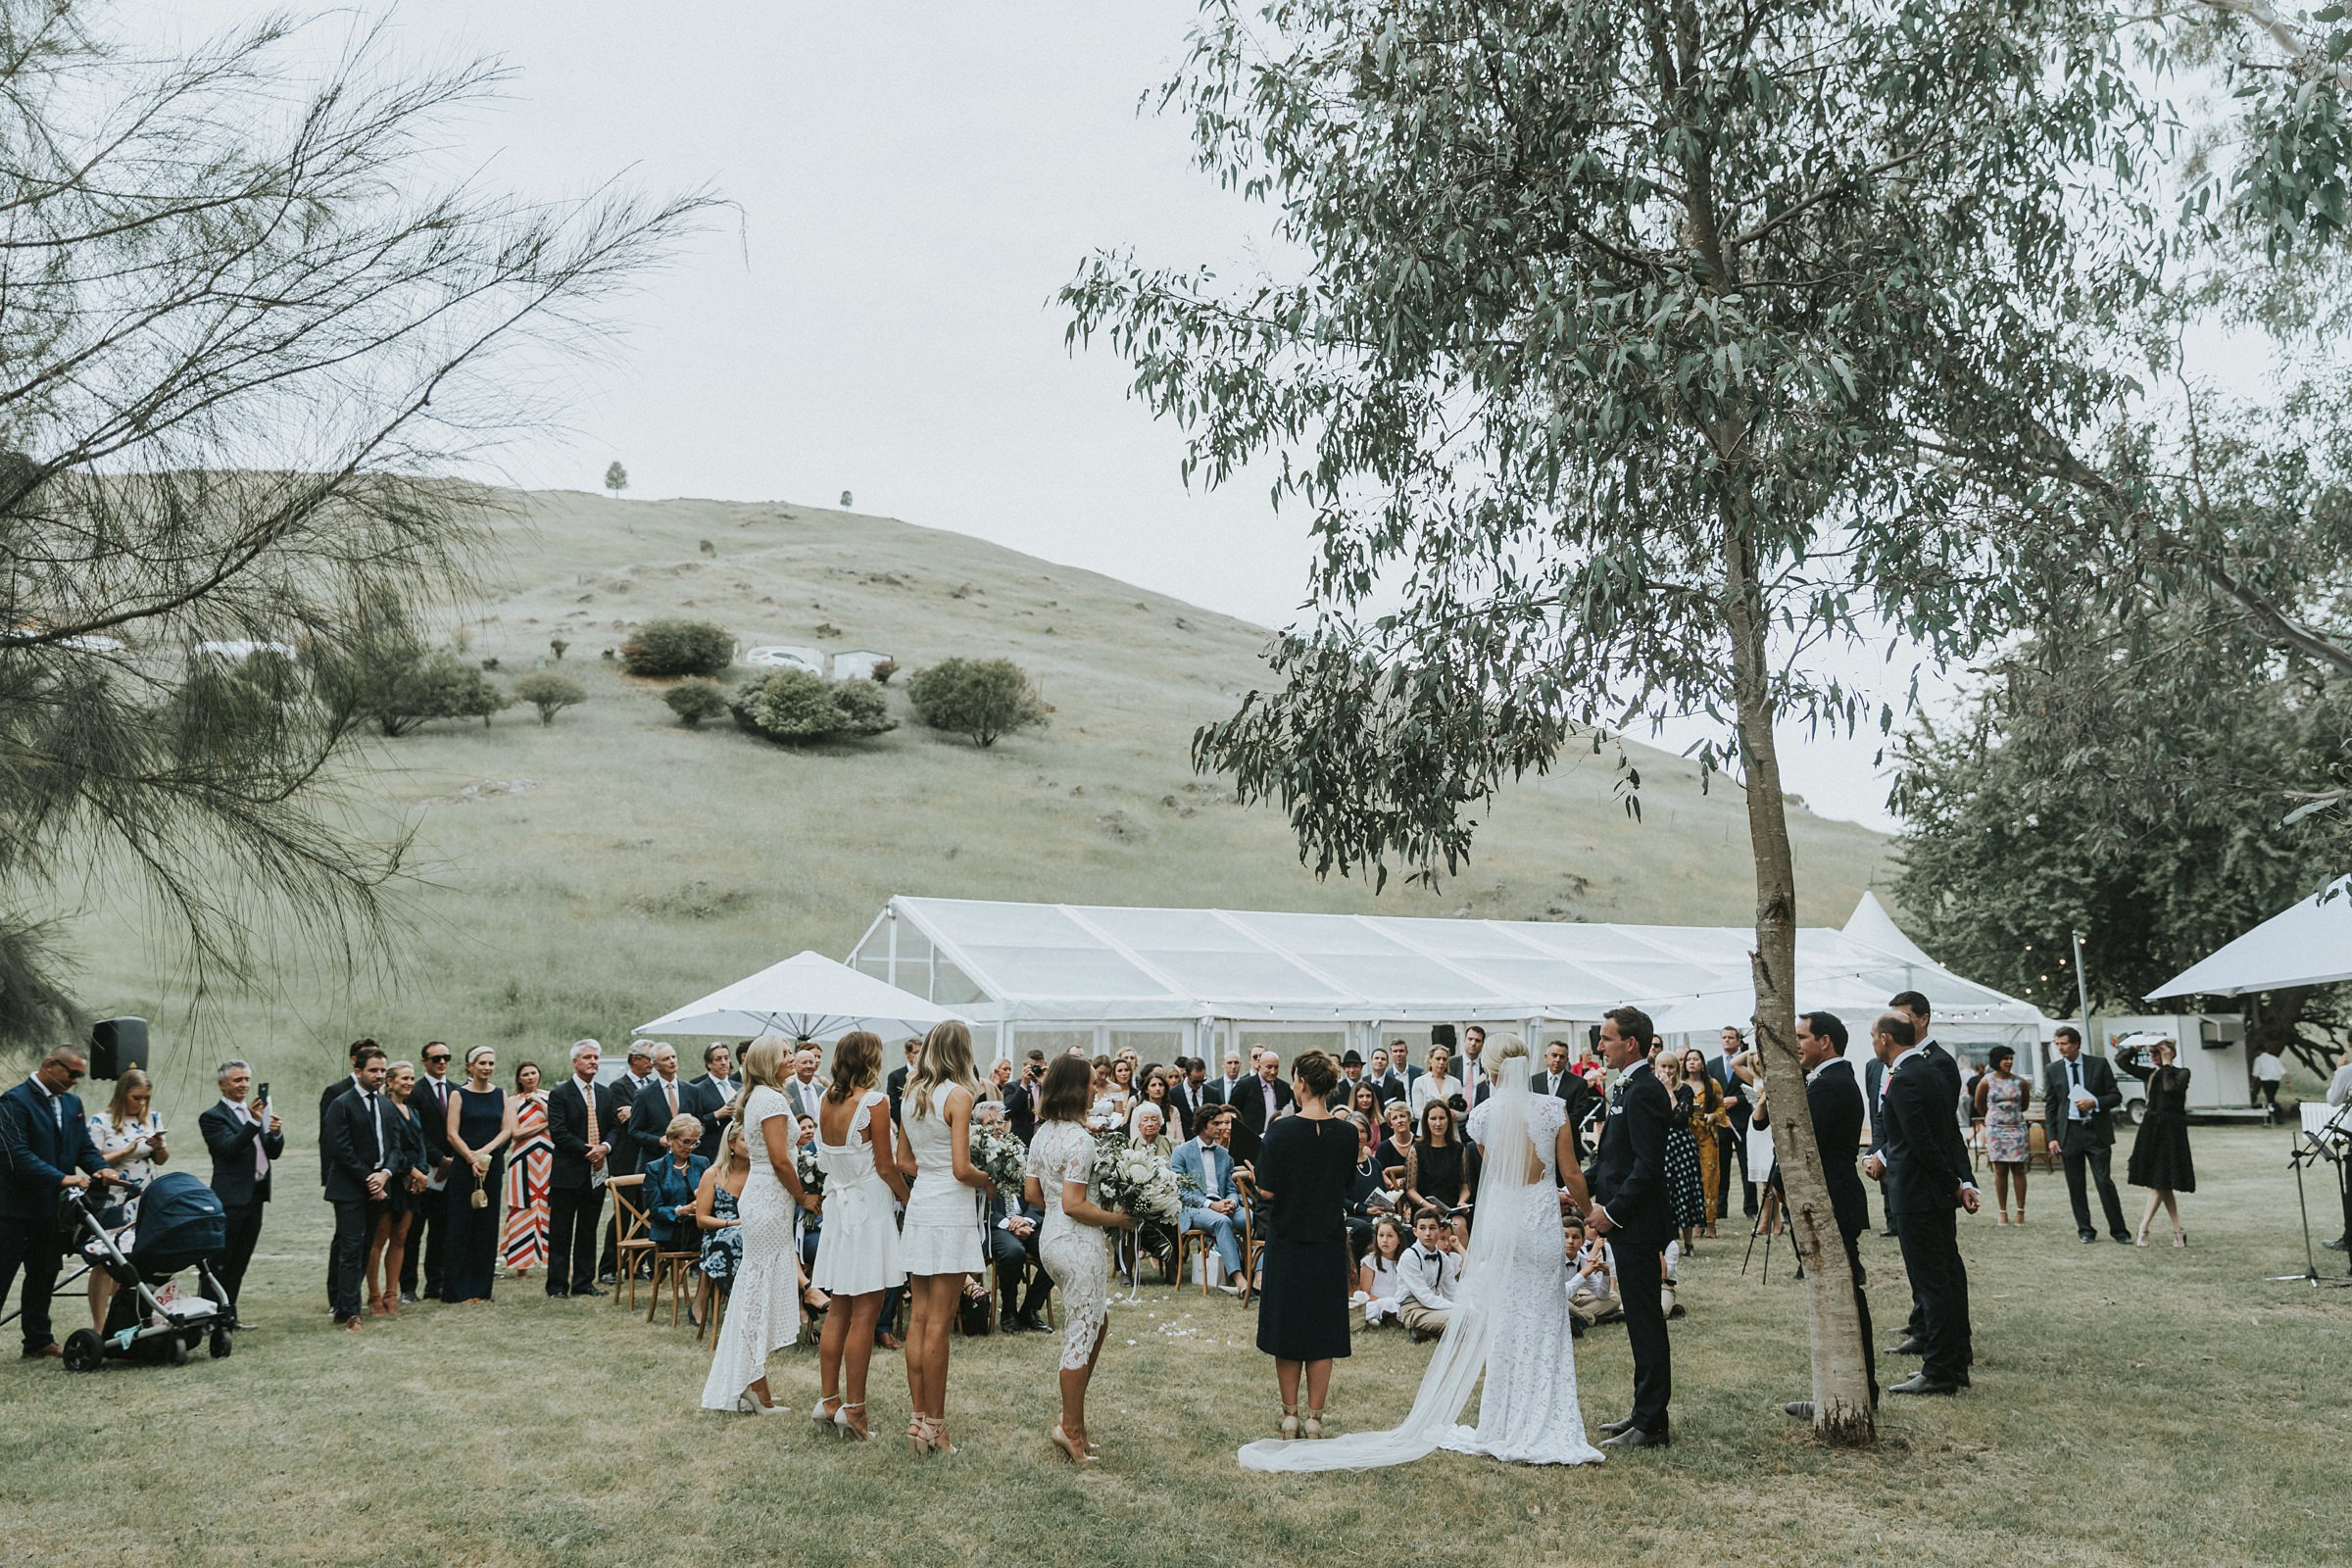 wedding ceremony in tumut by the tumut river